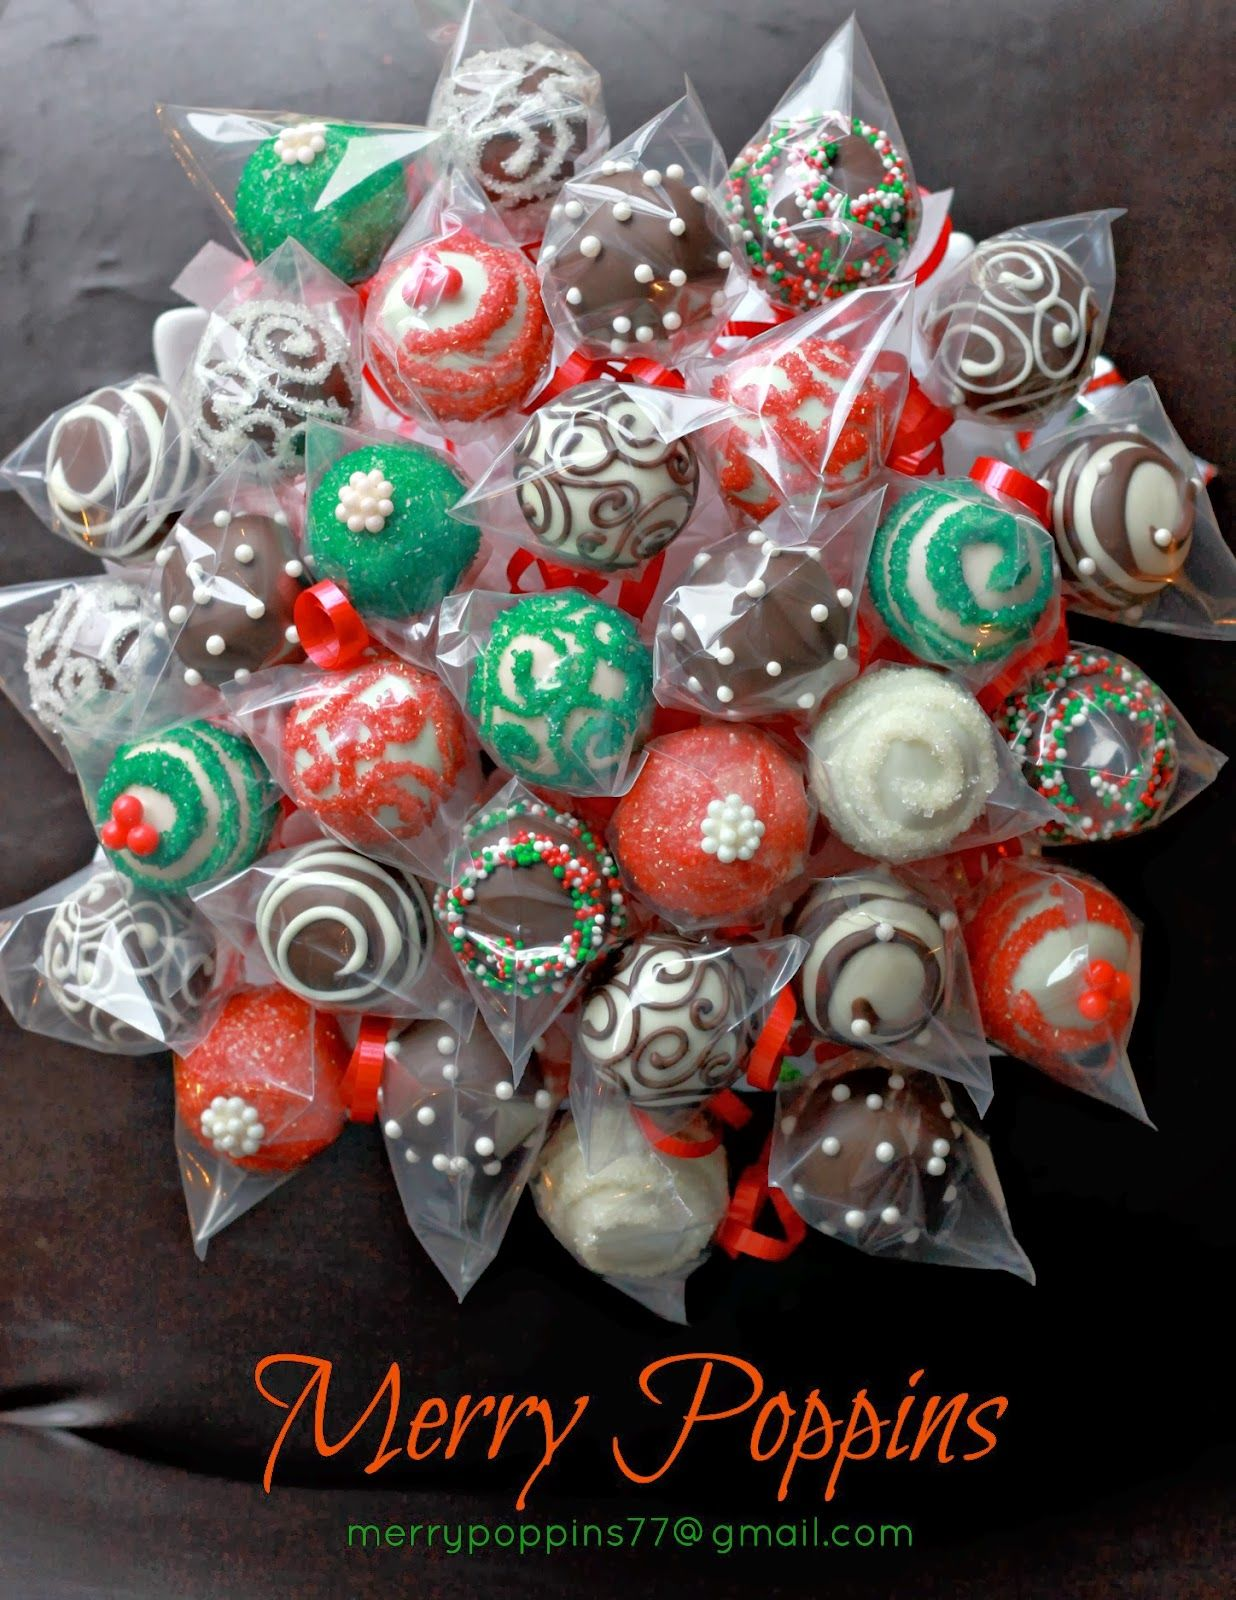 The centrepiece that distracts everyone from the meal. Christmas cake pop Bouquet by Merry Poppins & The centrepiece that distracts everyone from the meal. Christmas ...